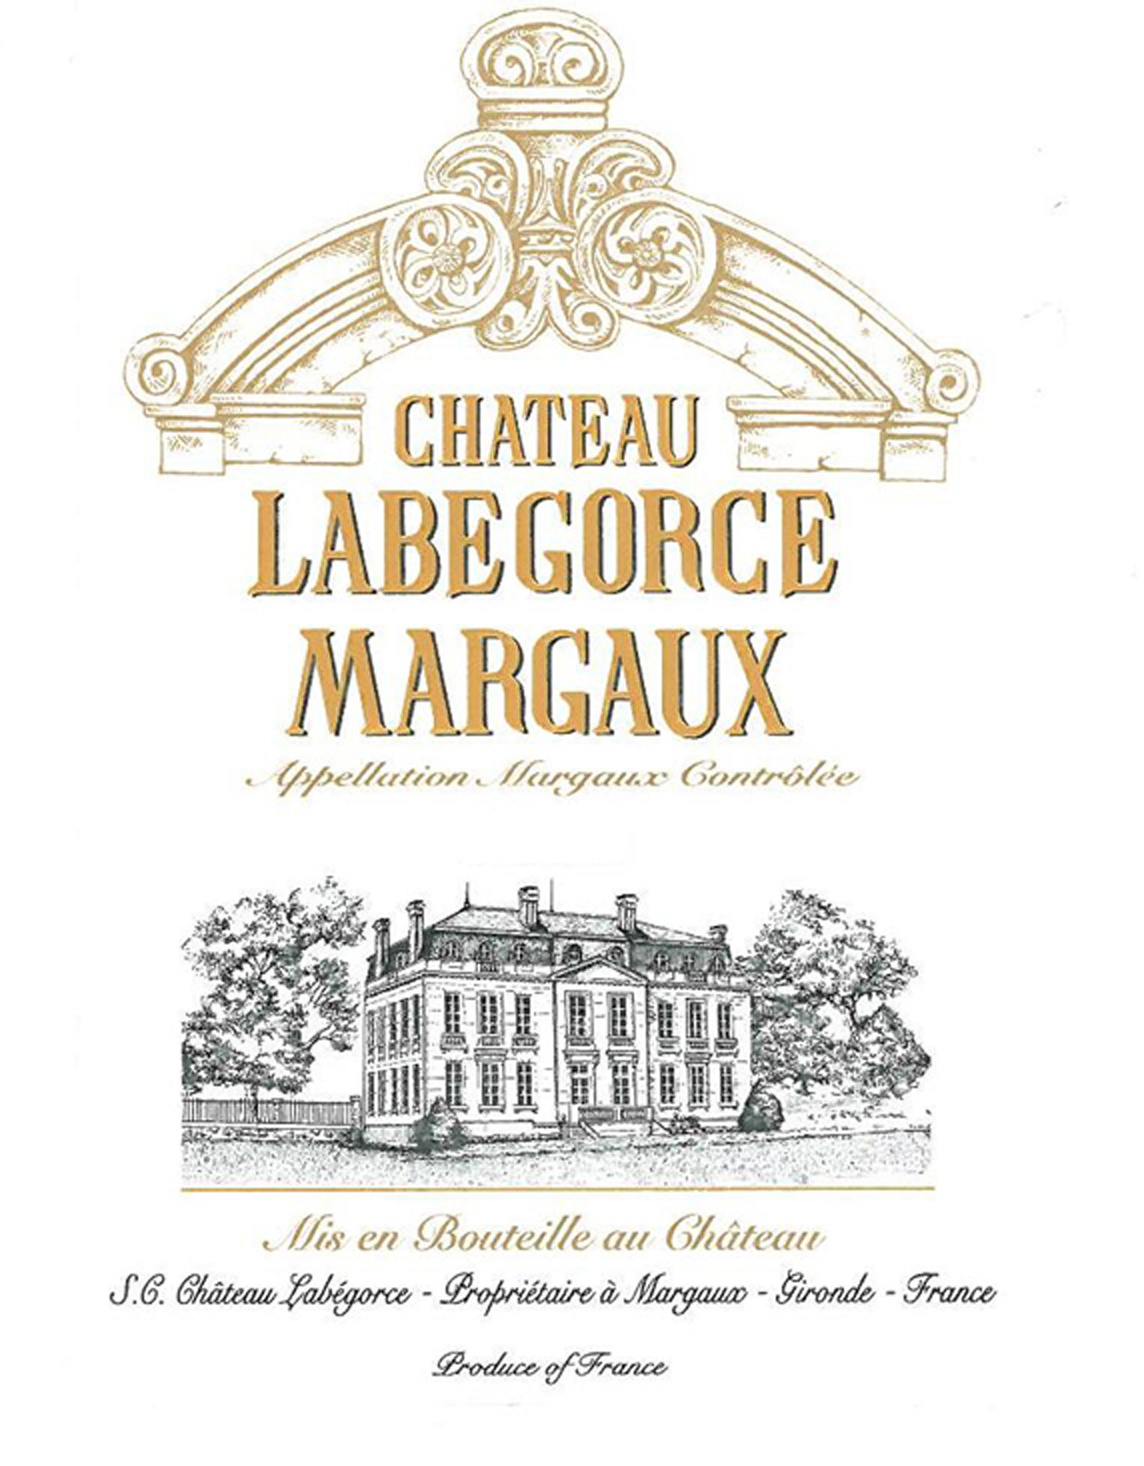 Chateau Labegorce